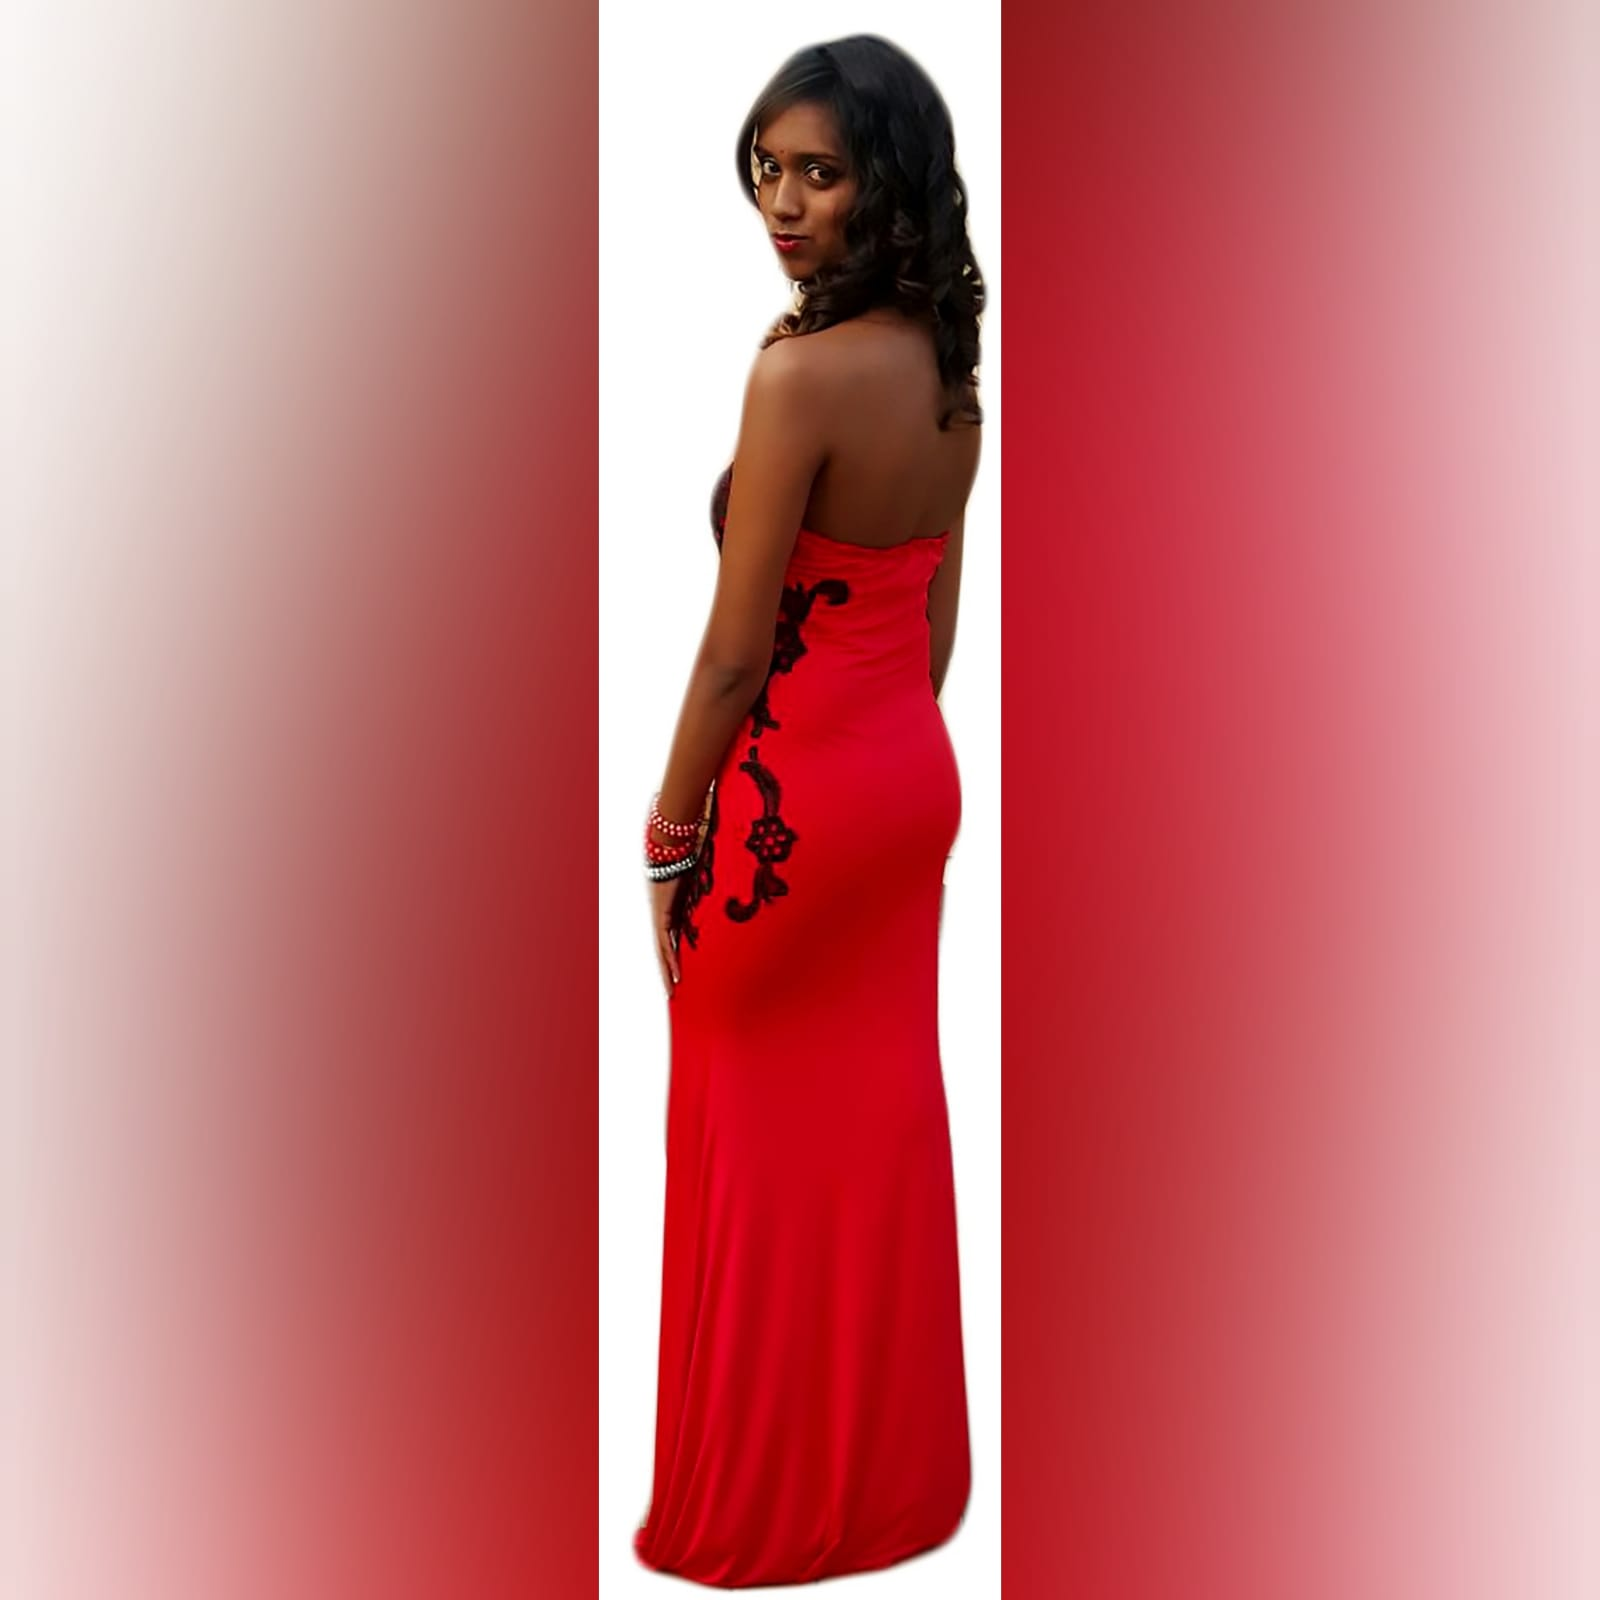 Red evening dress detailed with black lace 2 red evening dress detailed with black lace on the sides, front & back. With a sweetheart neckline finished with black scallop lace.